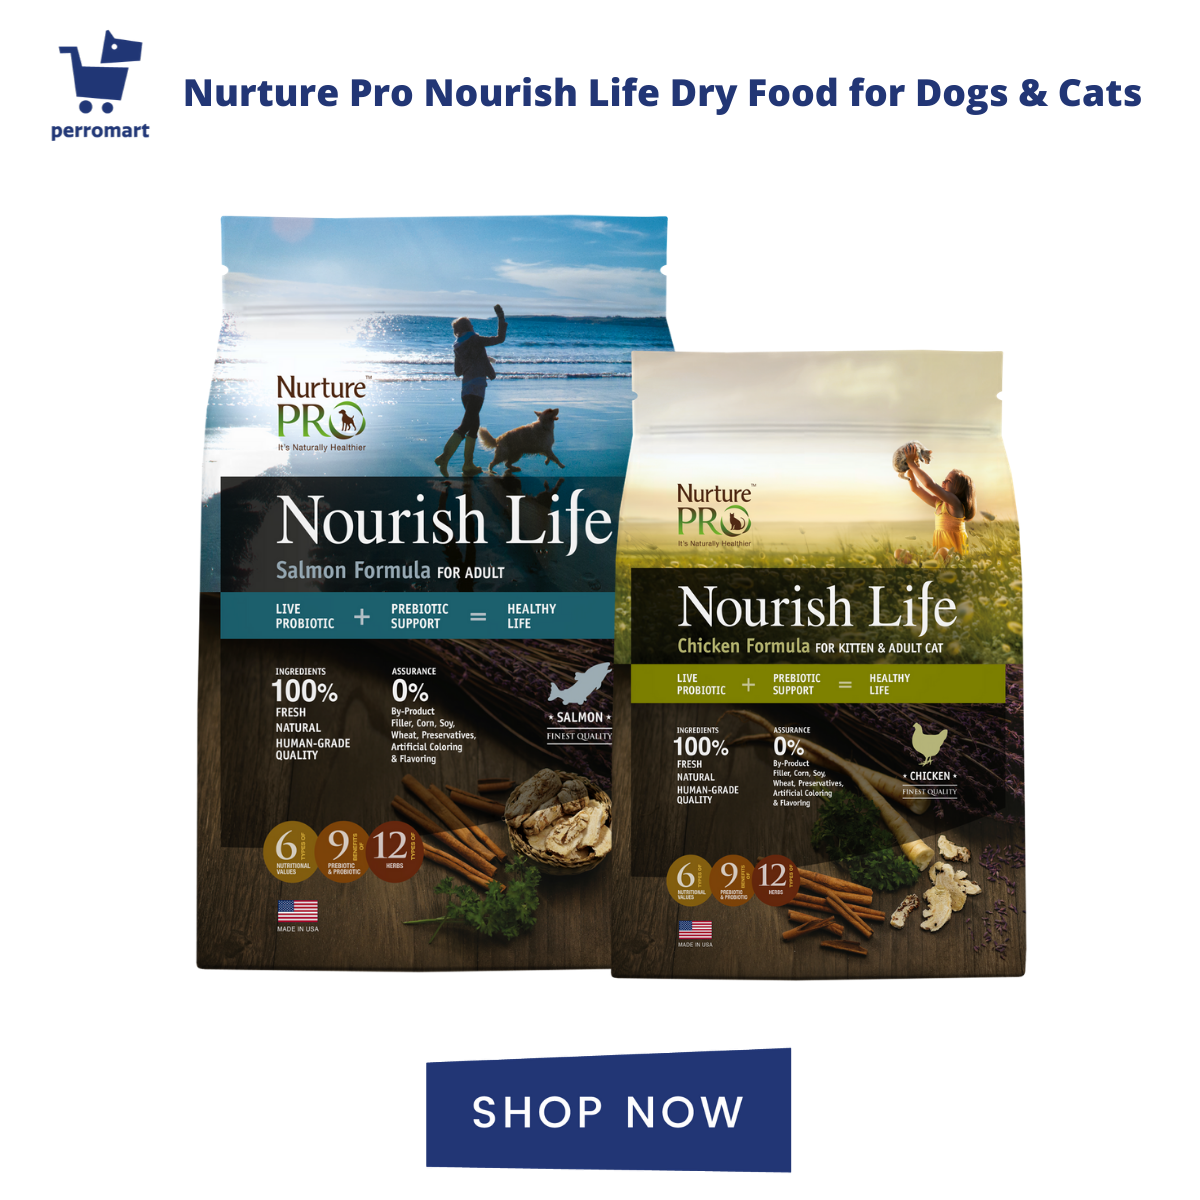 Nurture Pro Cat Food & Dog Food